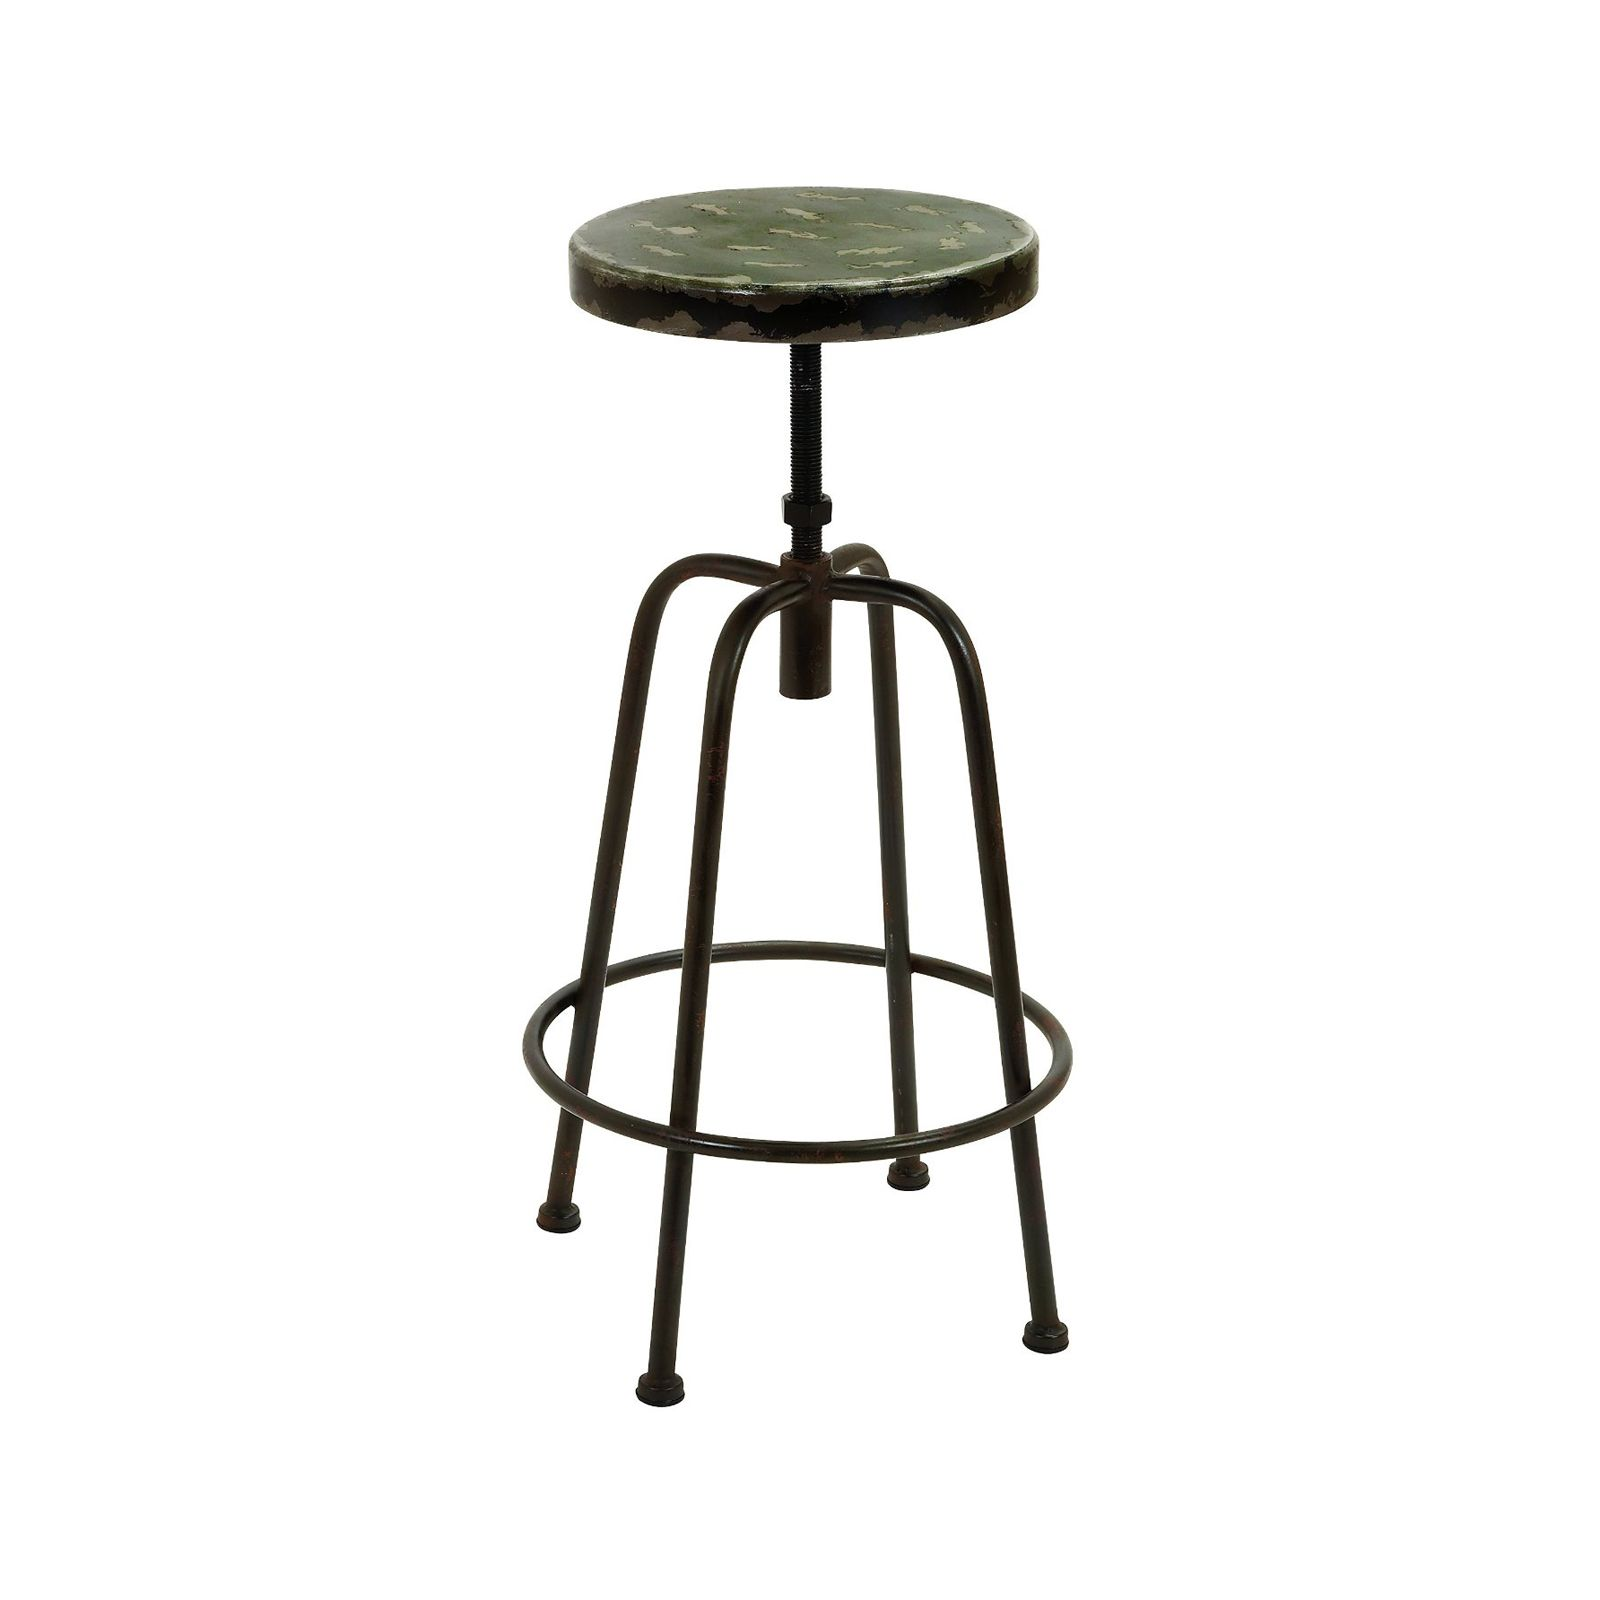 Furniture And Decor For The Modern Lifestyle Metal Bar Stools